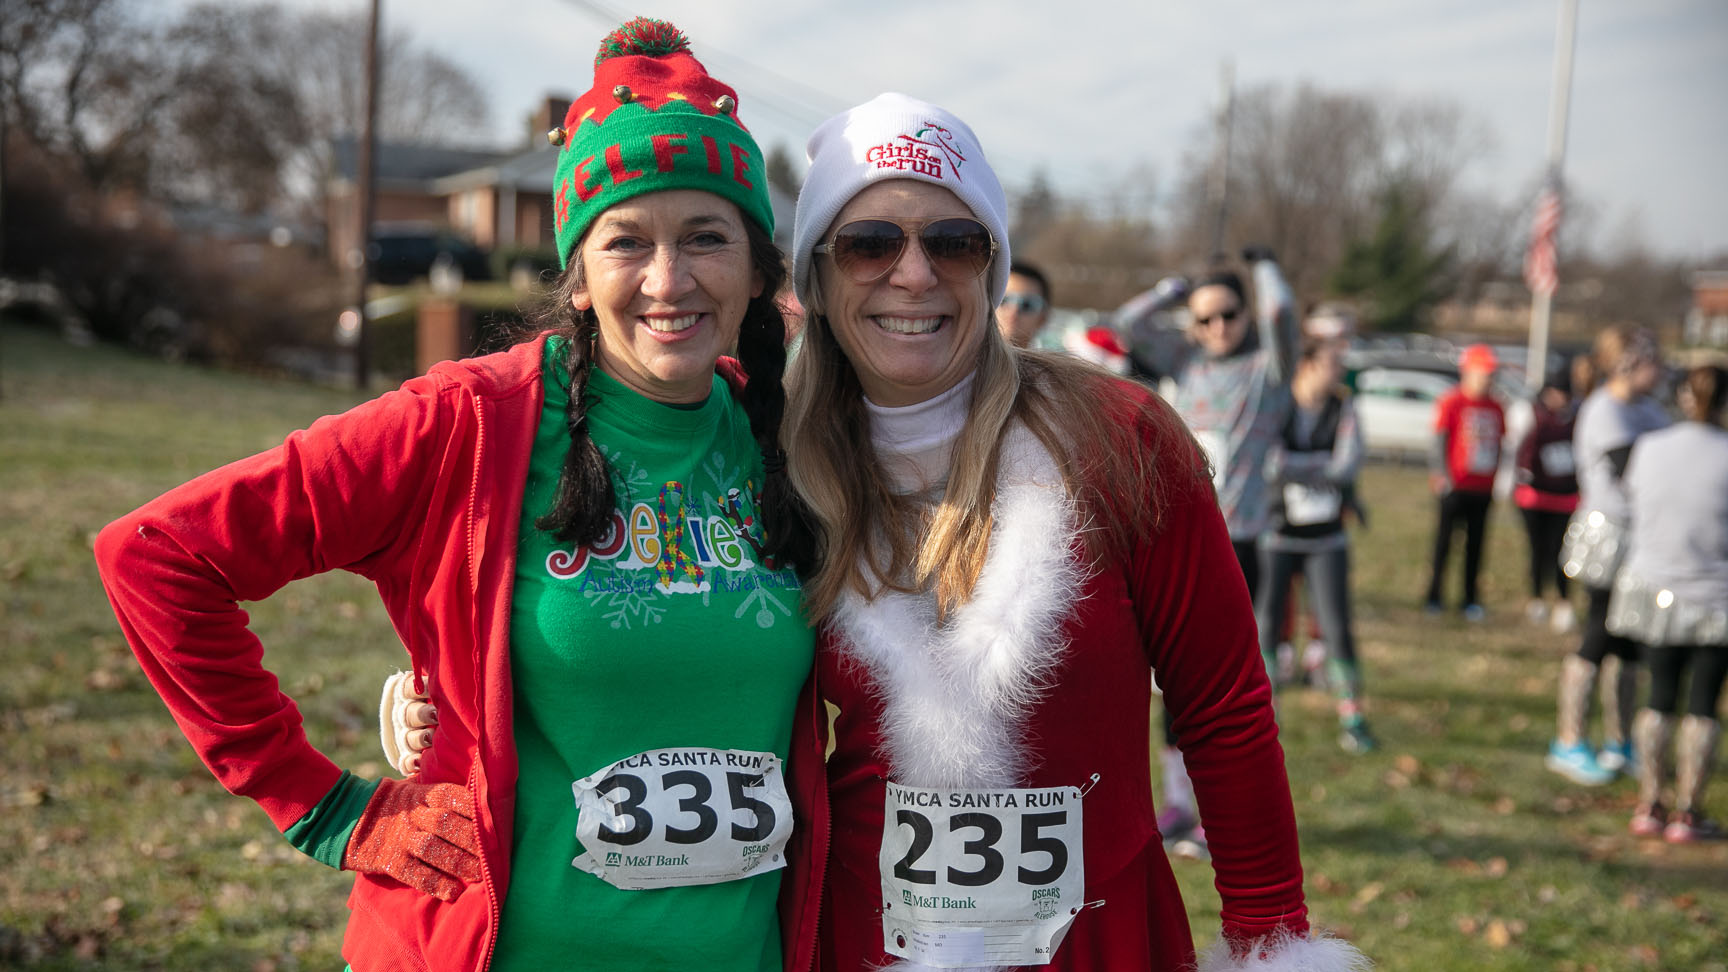 Photo of two women dressed up in red and green for Santa Run